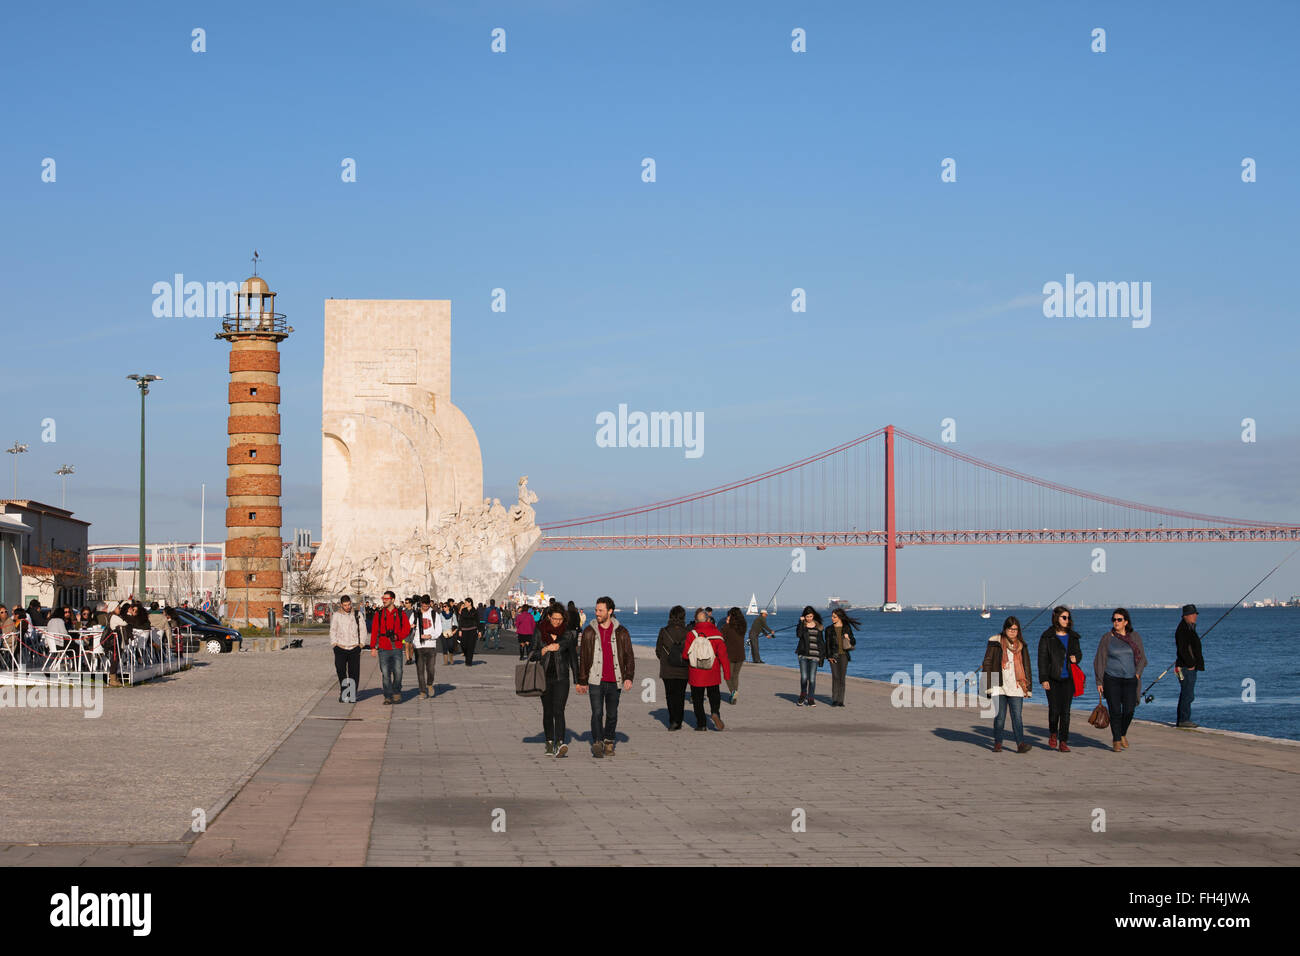 Portugal, city of Lisbon, Belem Lighthouse and Monument to the Discoveries (Padrao dos Descobrimentos), promenade - Stock Image